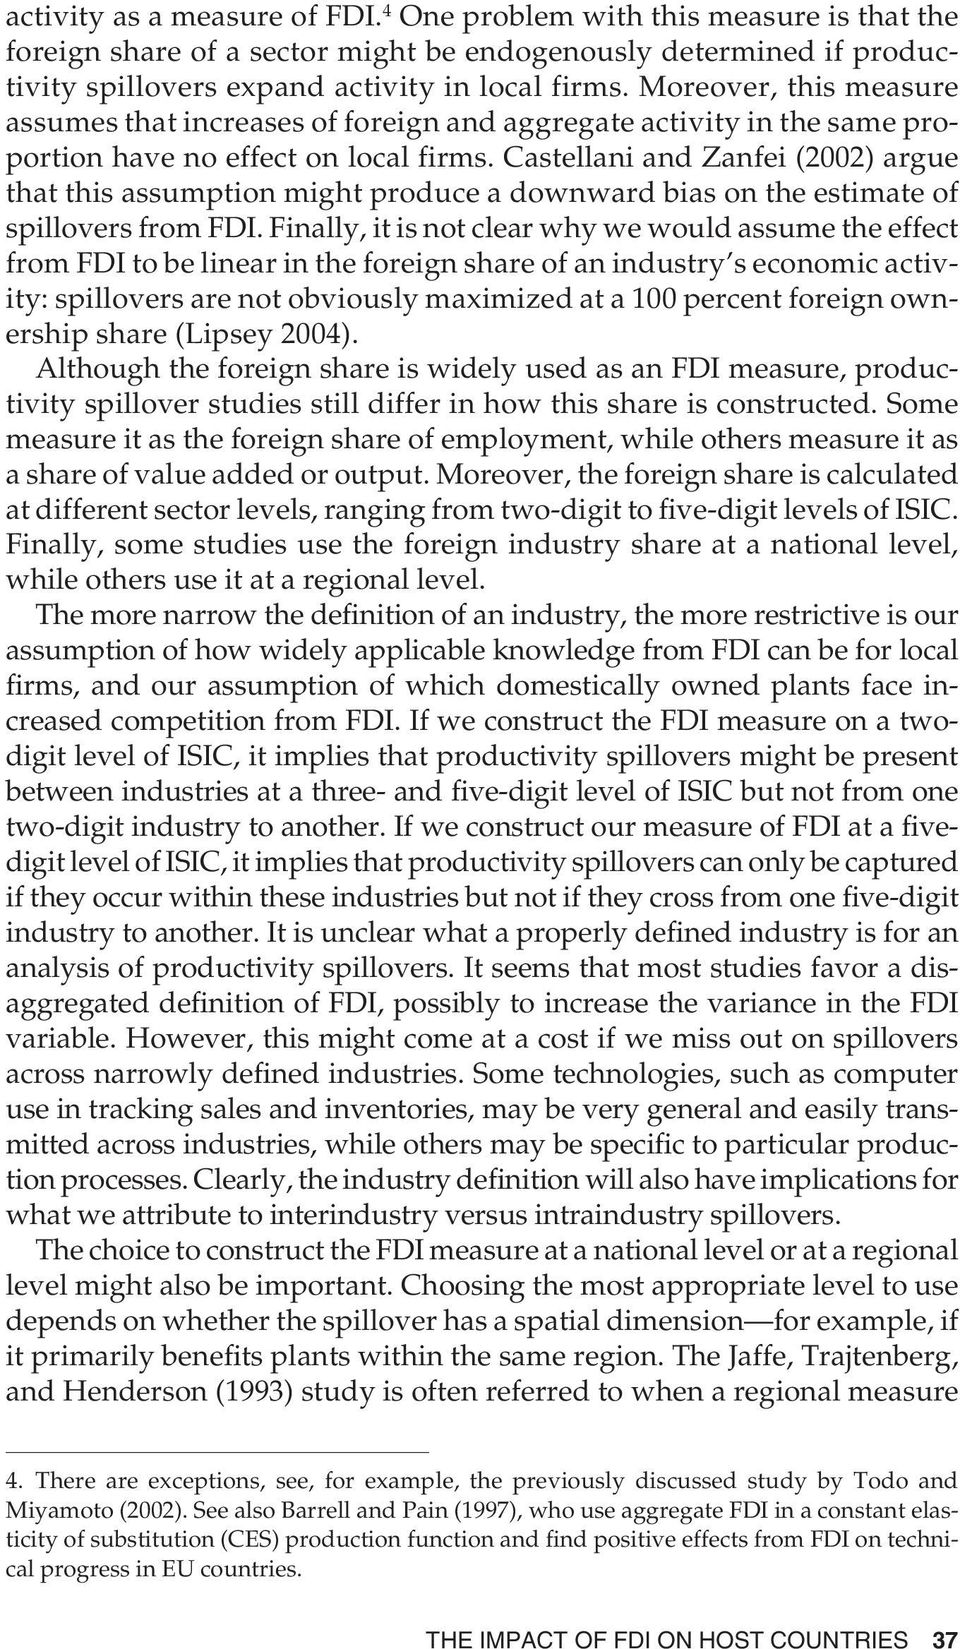 Castellani and Zanfei (2002) argue that this assumption might produce a downward bias on the estimate of spillovers from FDI.